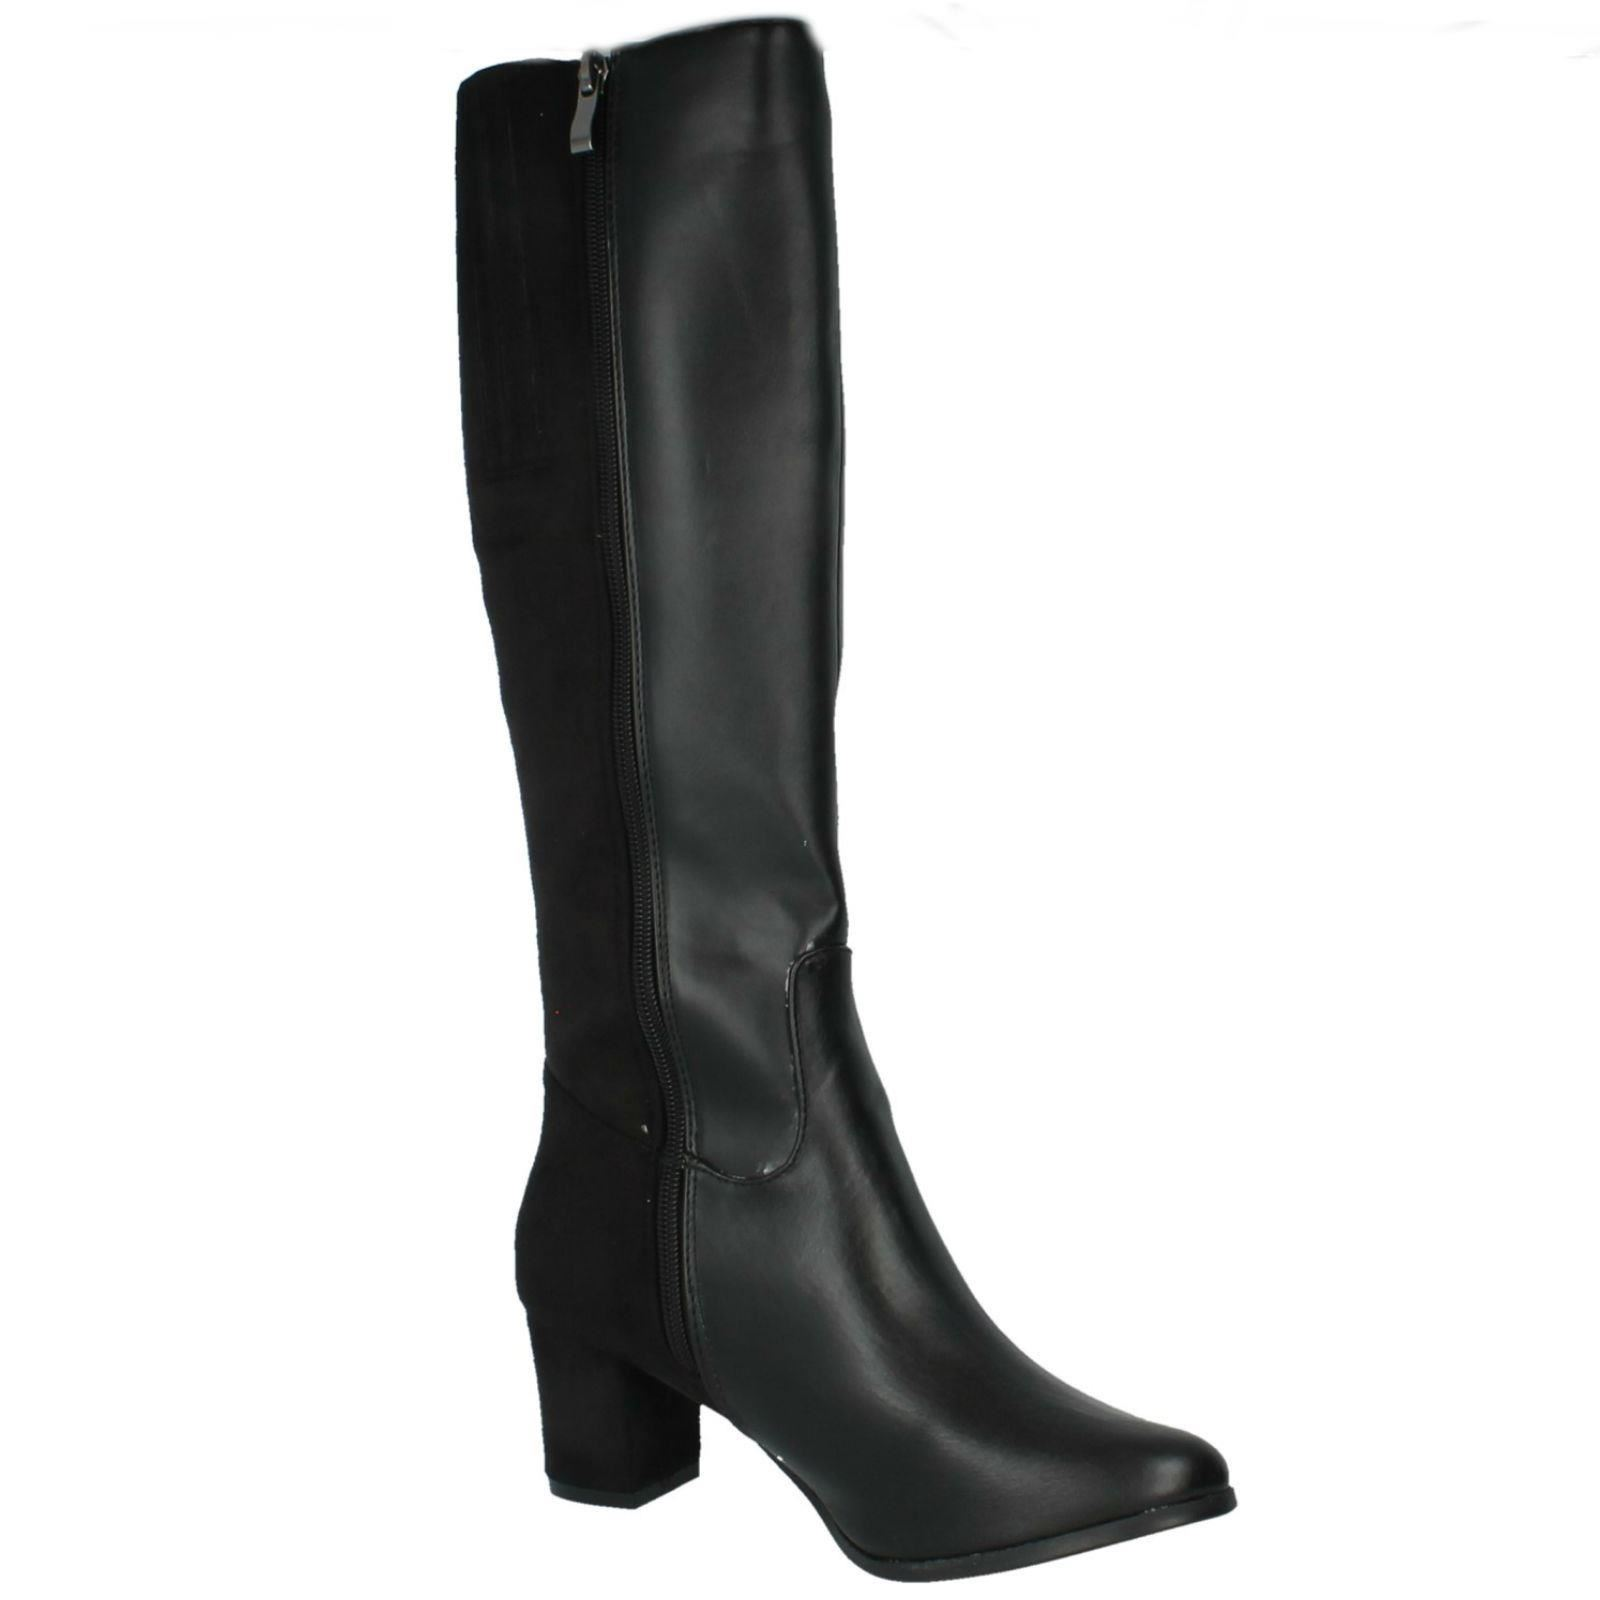 Ladies Spot F50366 On Heeled Boots Label F50366 Spot cfb06f